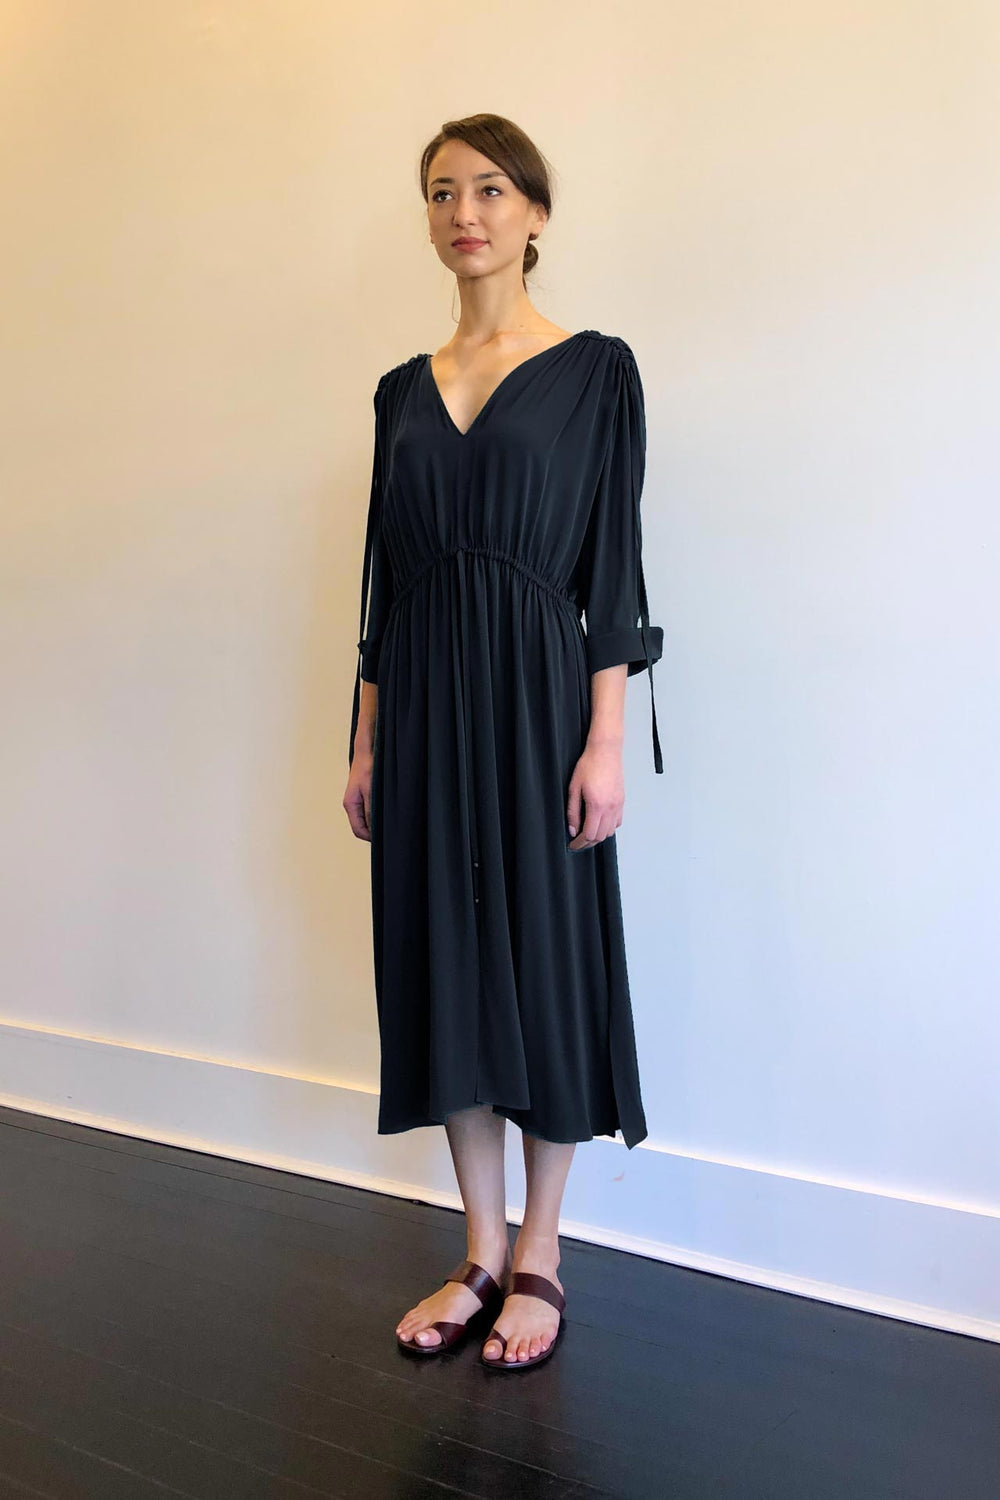 Fashion Designer CARL KAPP collection | Denise Onesize Fits All Dress Navy | Sydney Australia